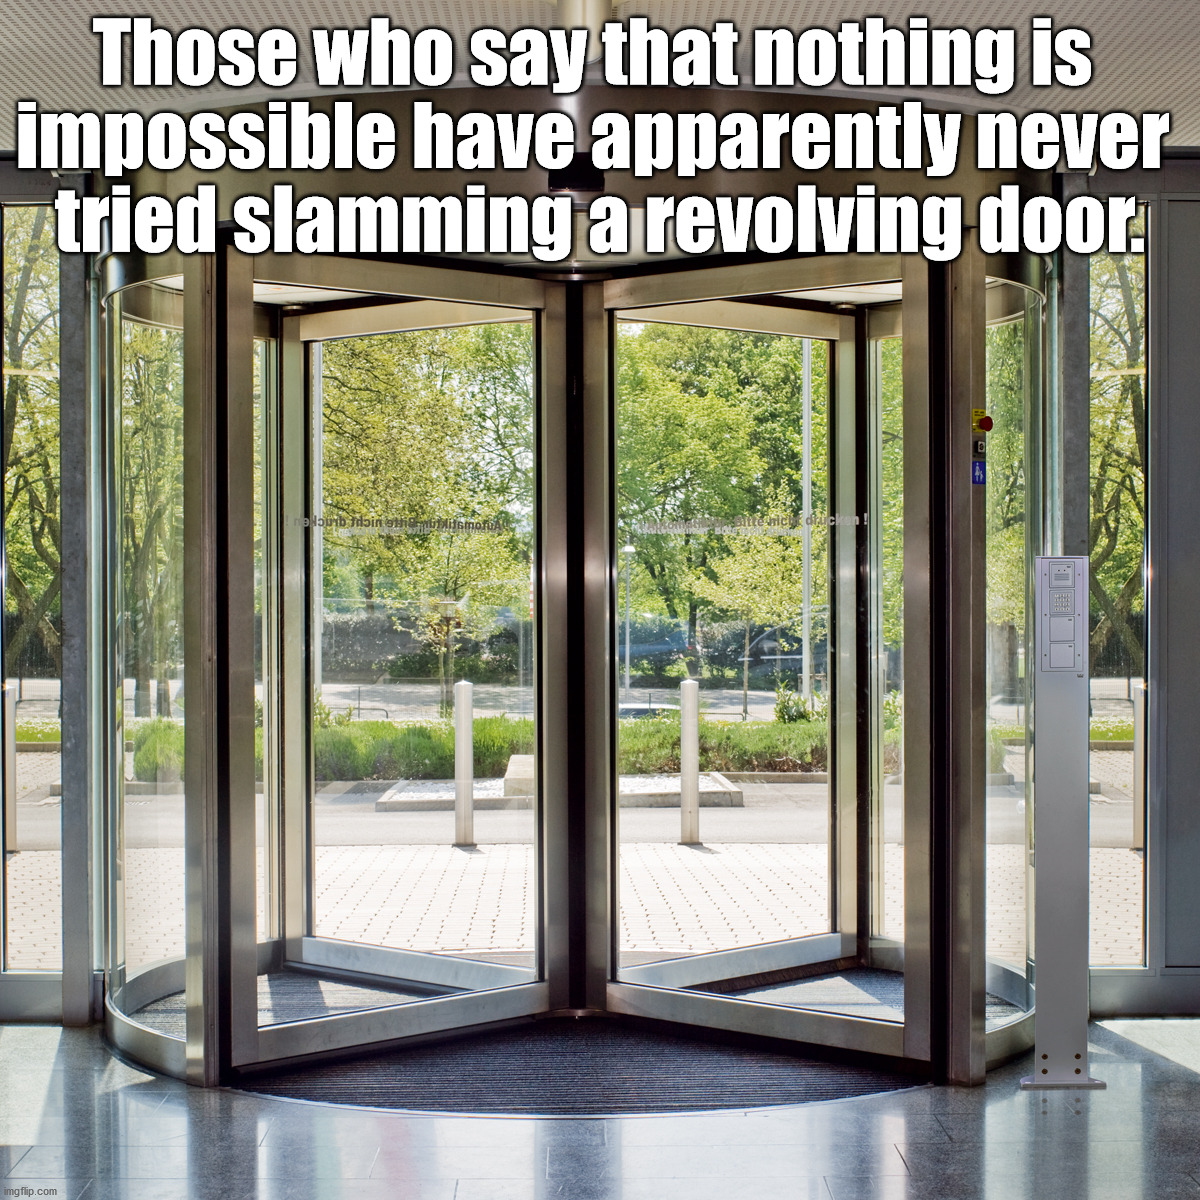 Frustrating that you can't slam the door. |  Those who say that nothing is  impossible have apparently never  tried slamming a revolving door. | image tagged in revolving door,slam,impossible | made w/ Imgflip meme maker